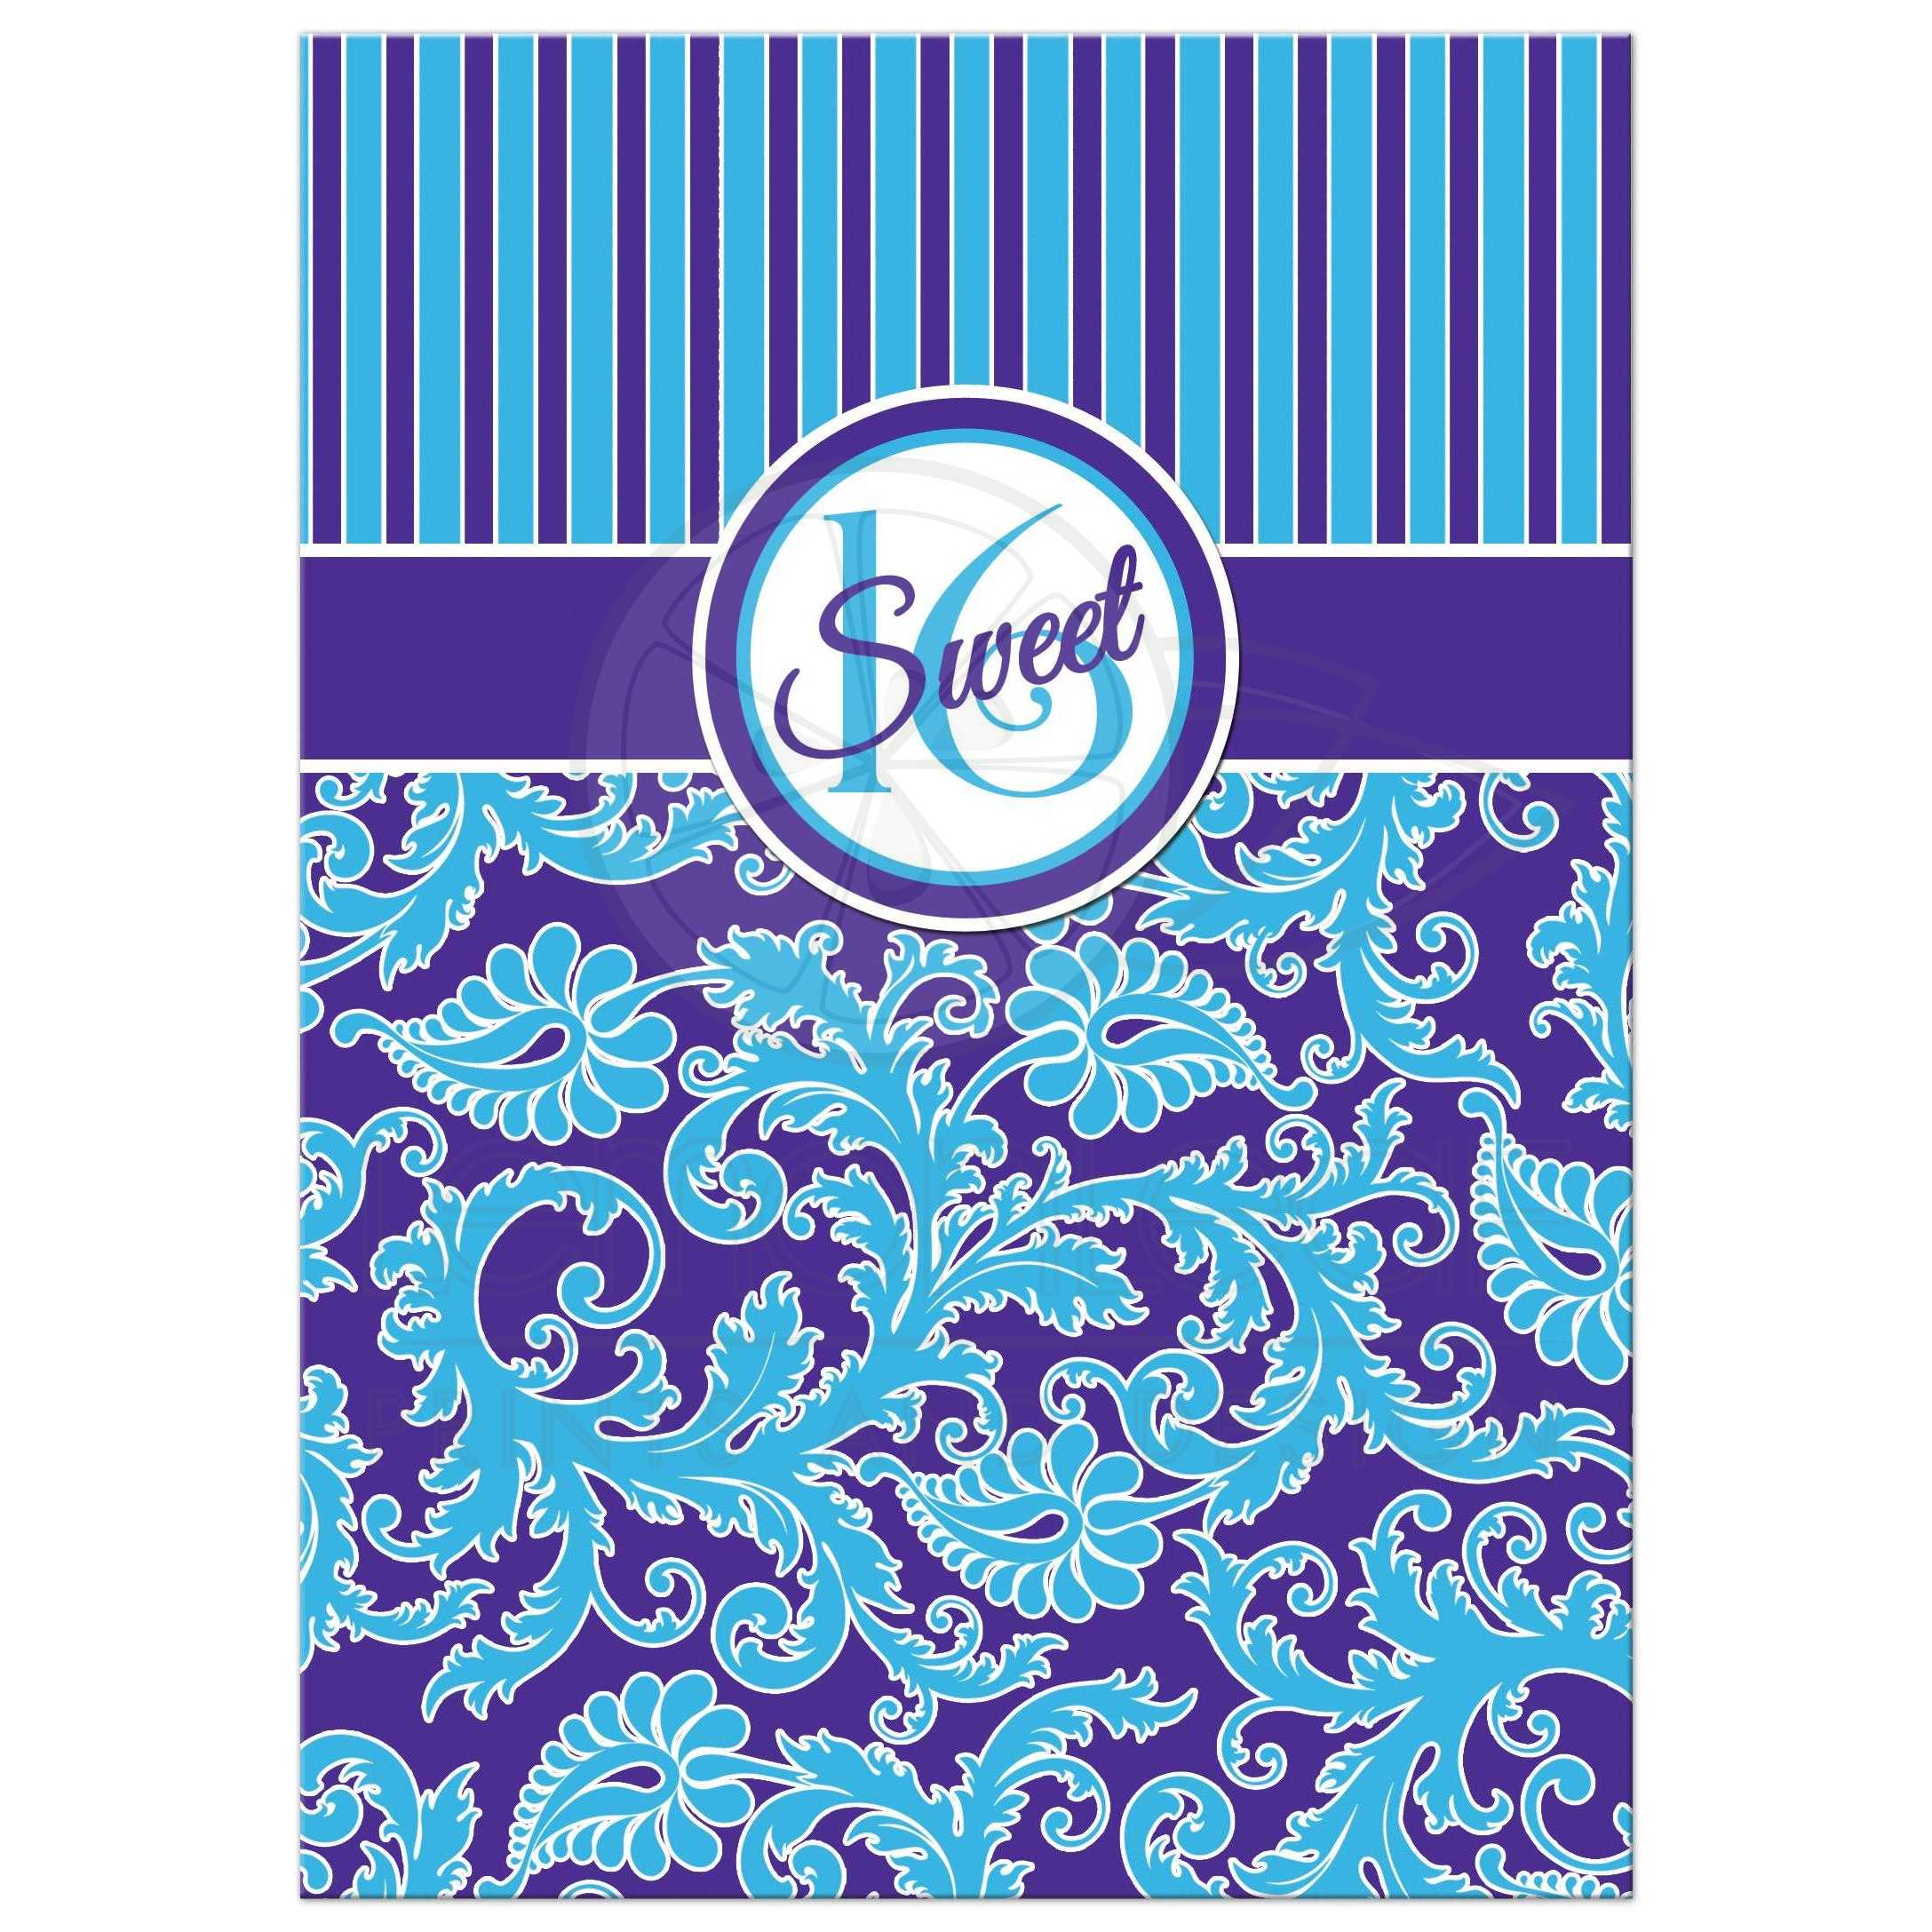 Sweet 16 Birthday Party Invitation In Blue And Purple Striped Damask